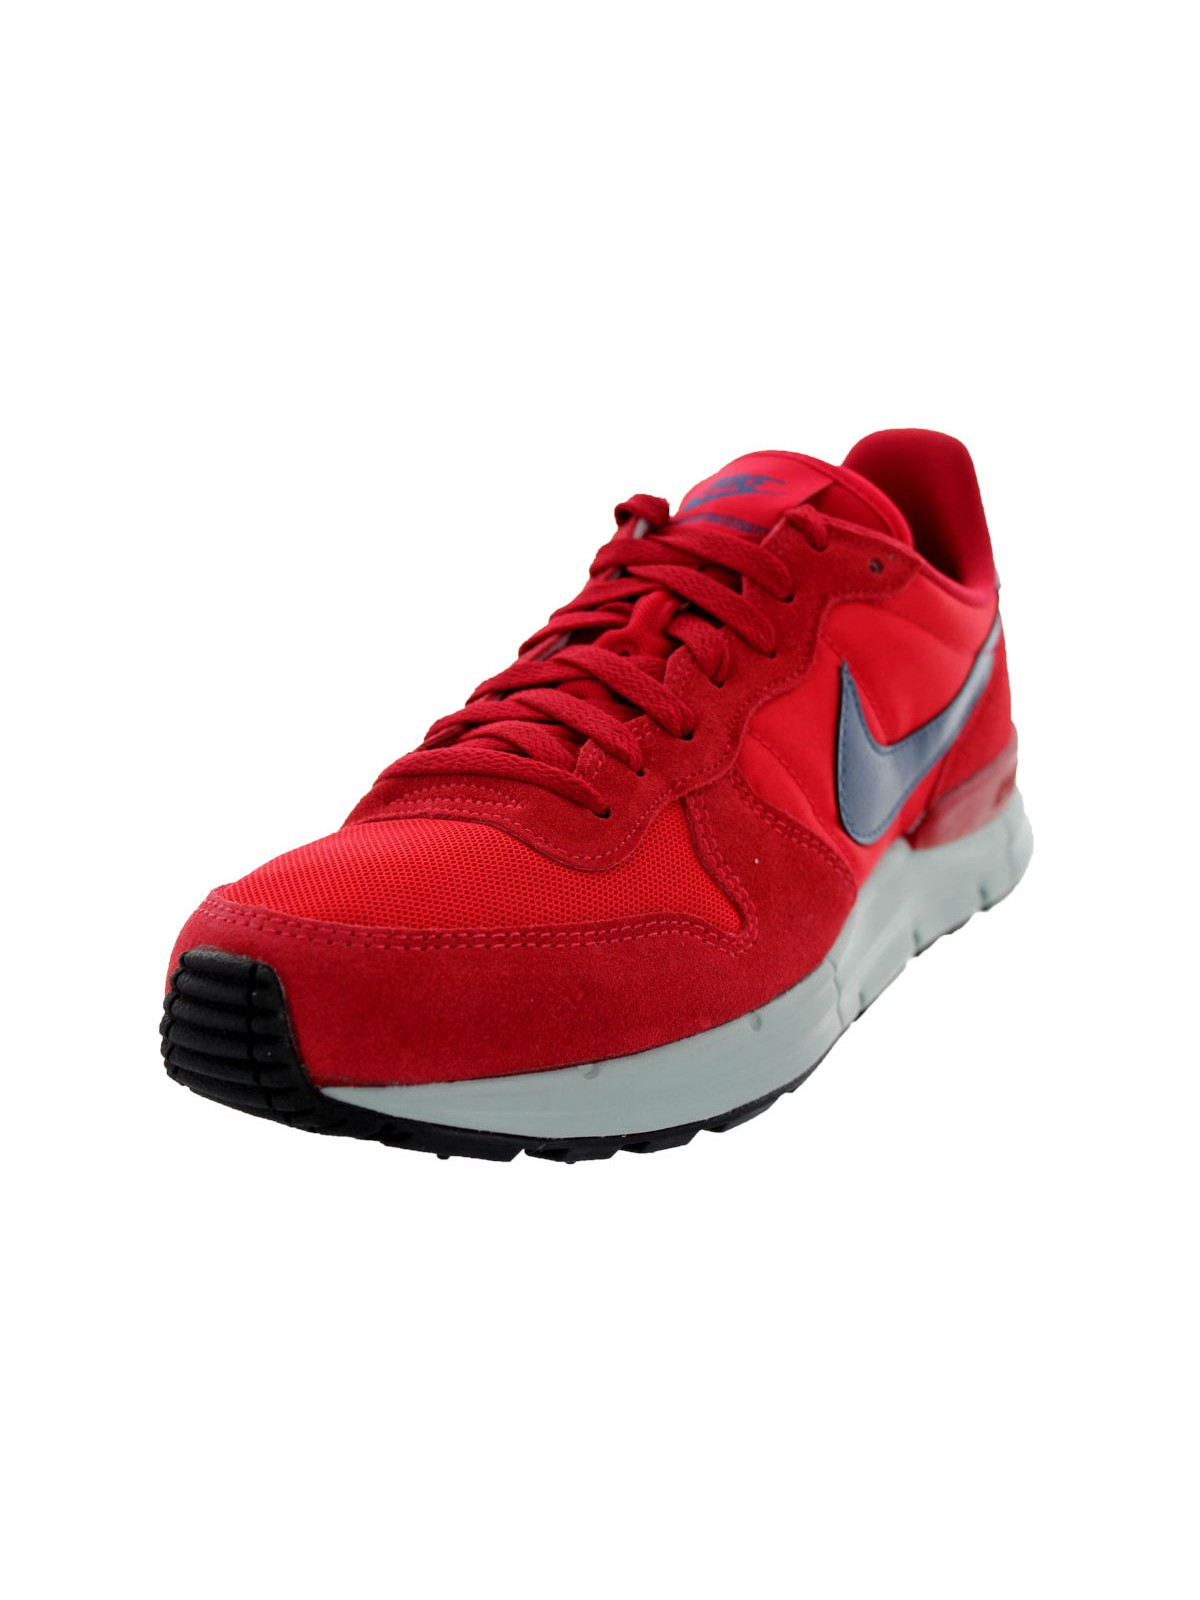 Nike Men's Lunarinternationalist Running Shoe Economical, stylish, and eye-catching shoes